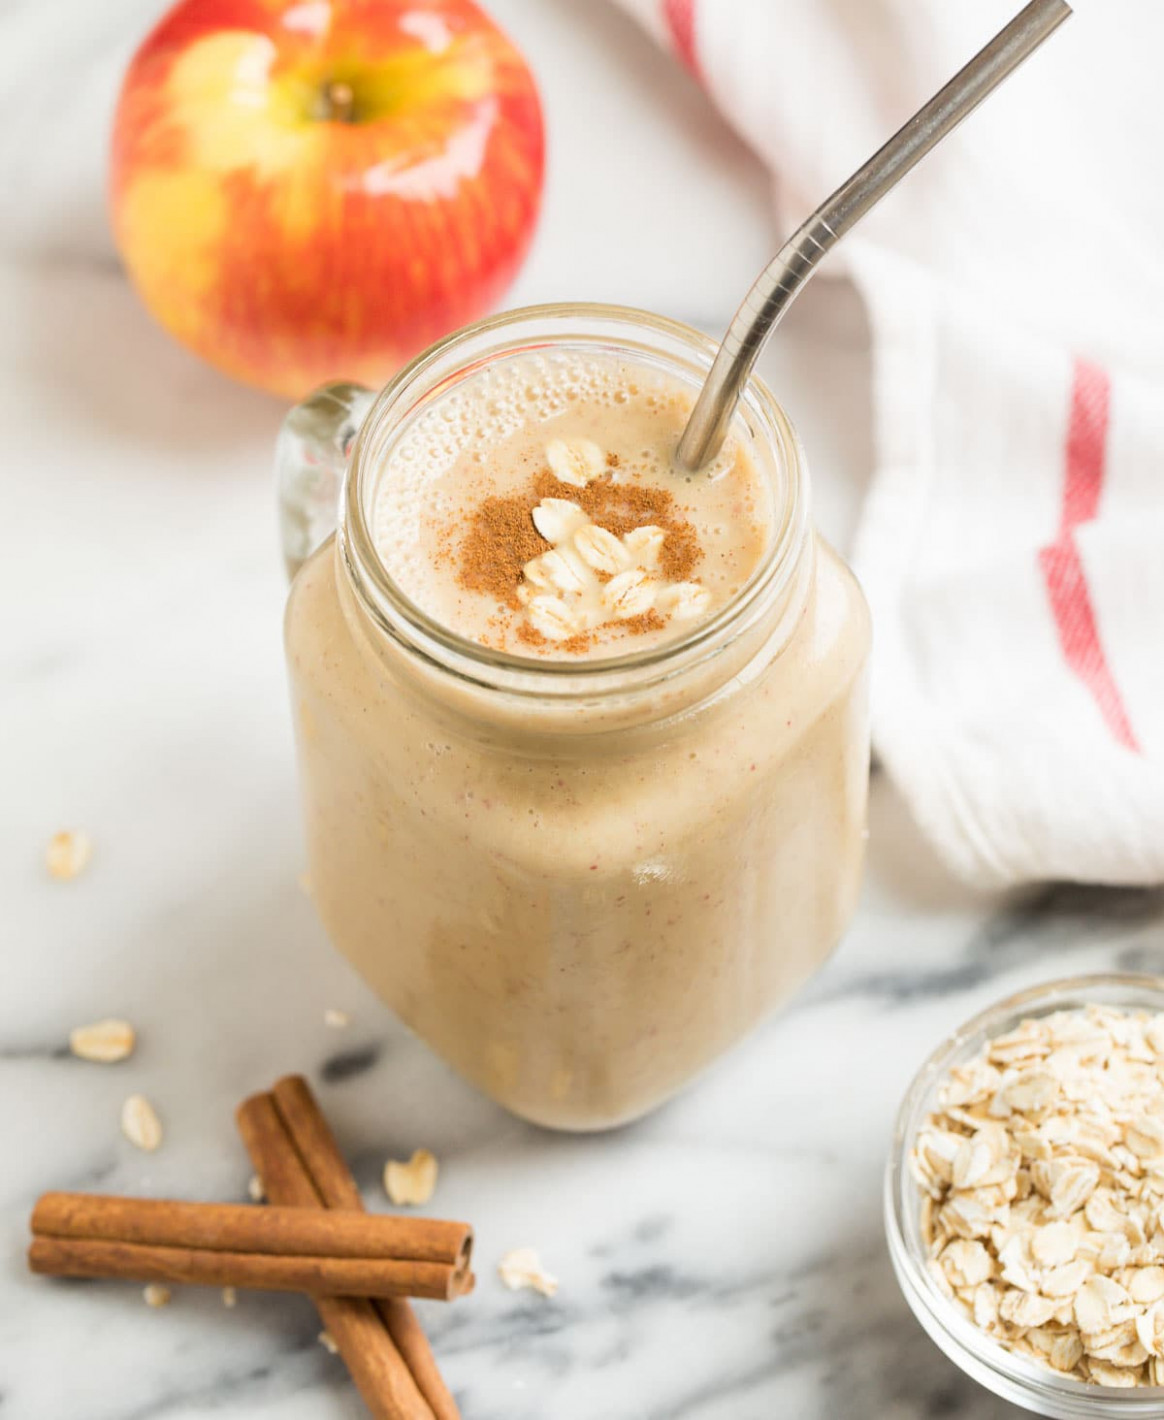 Apple Smoothie - healthy recipes using apples